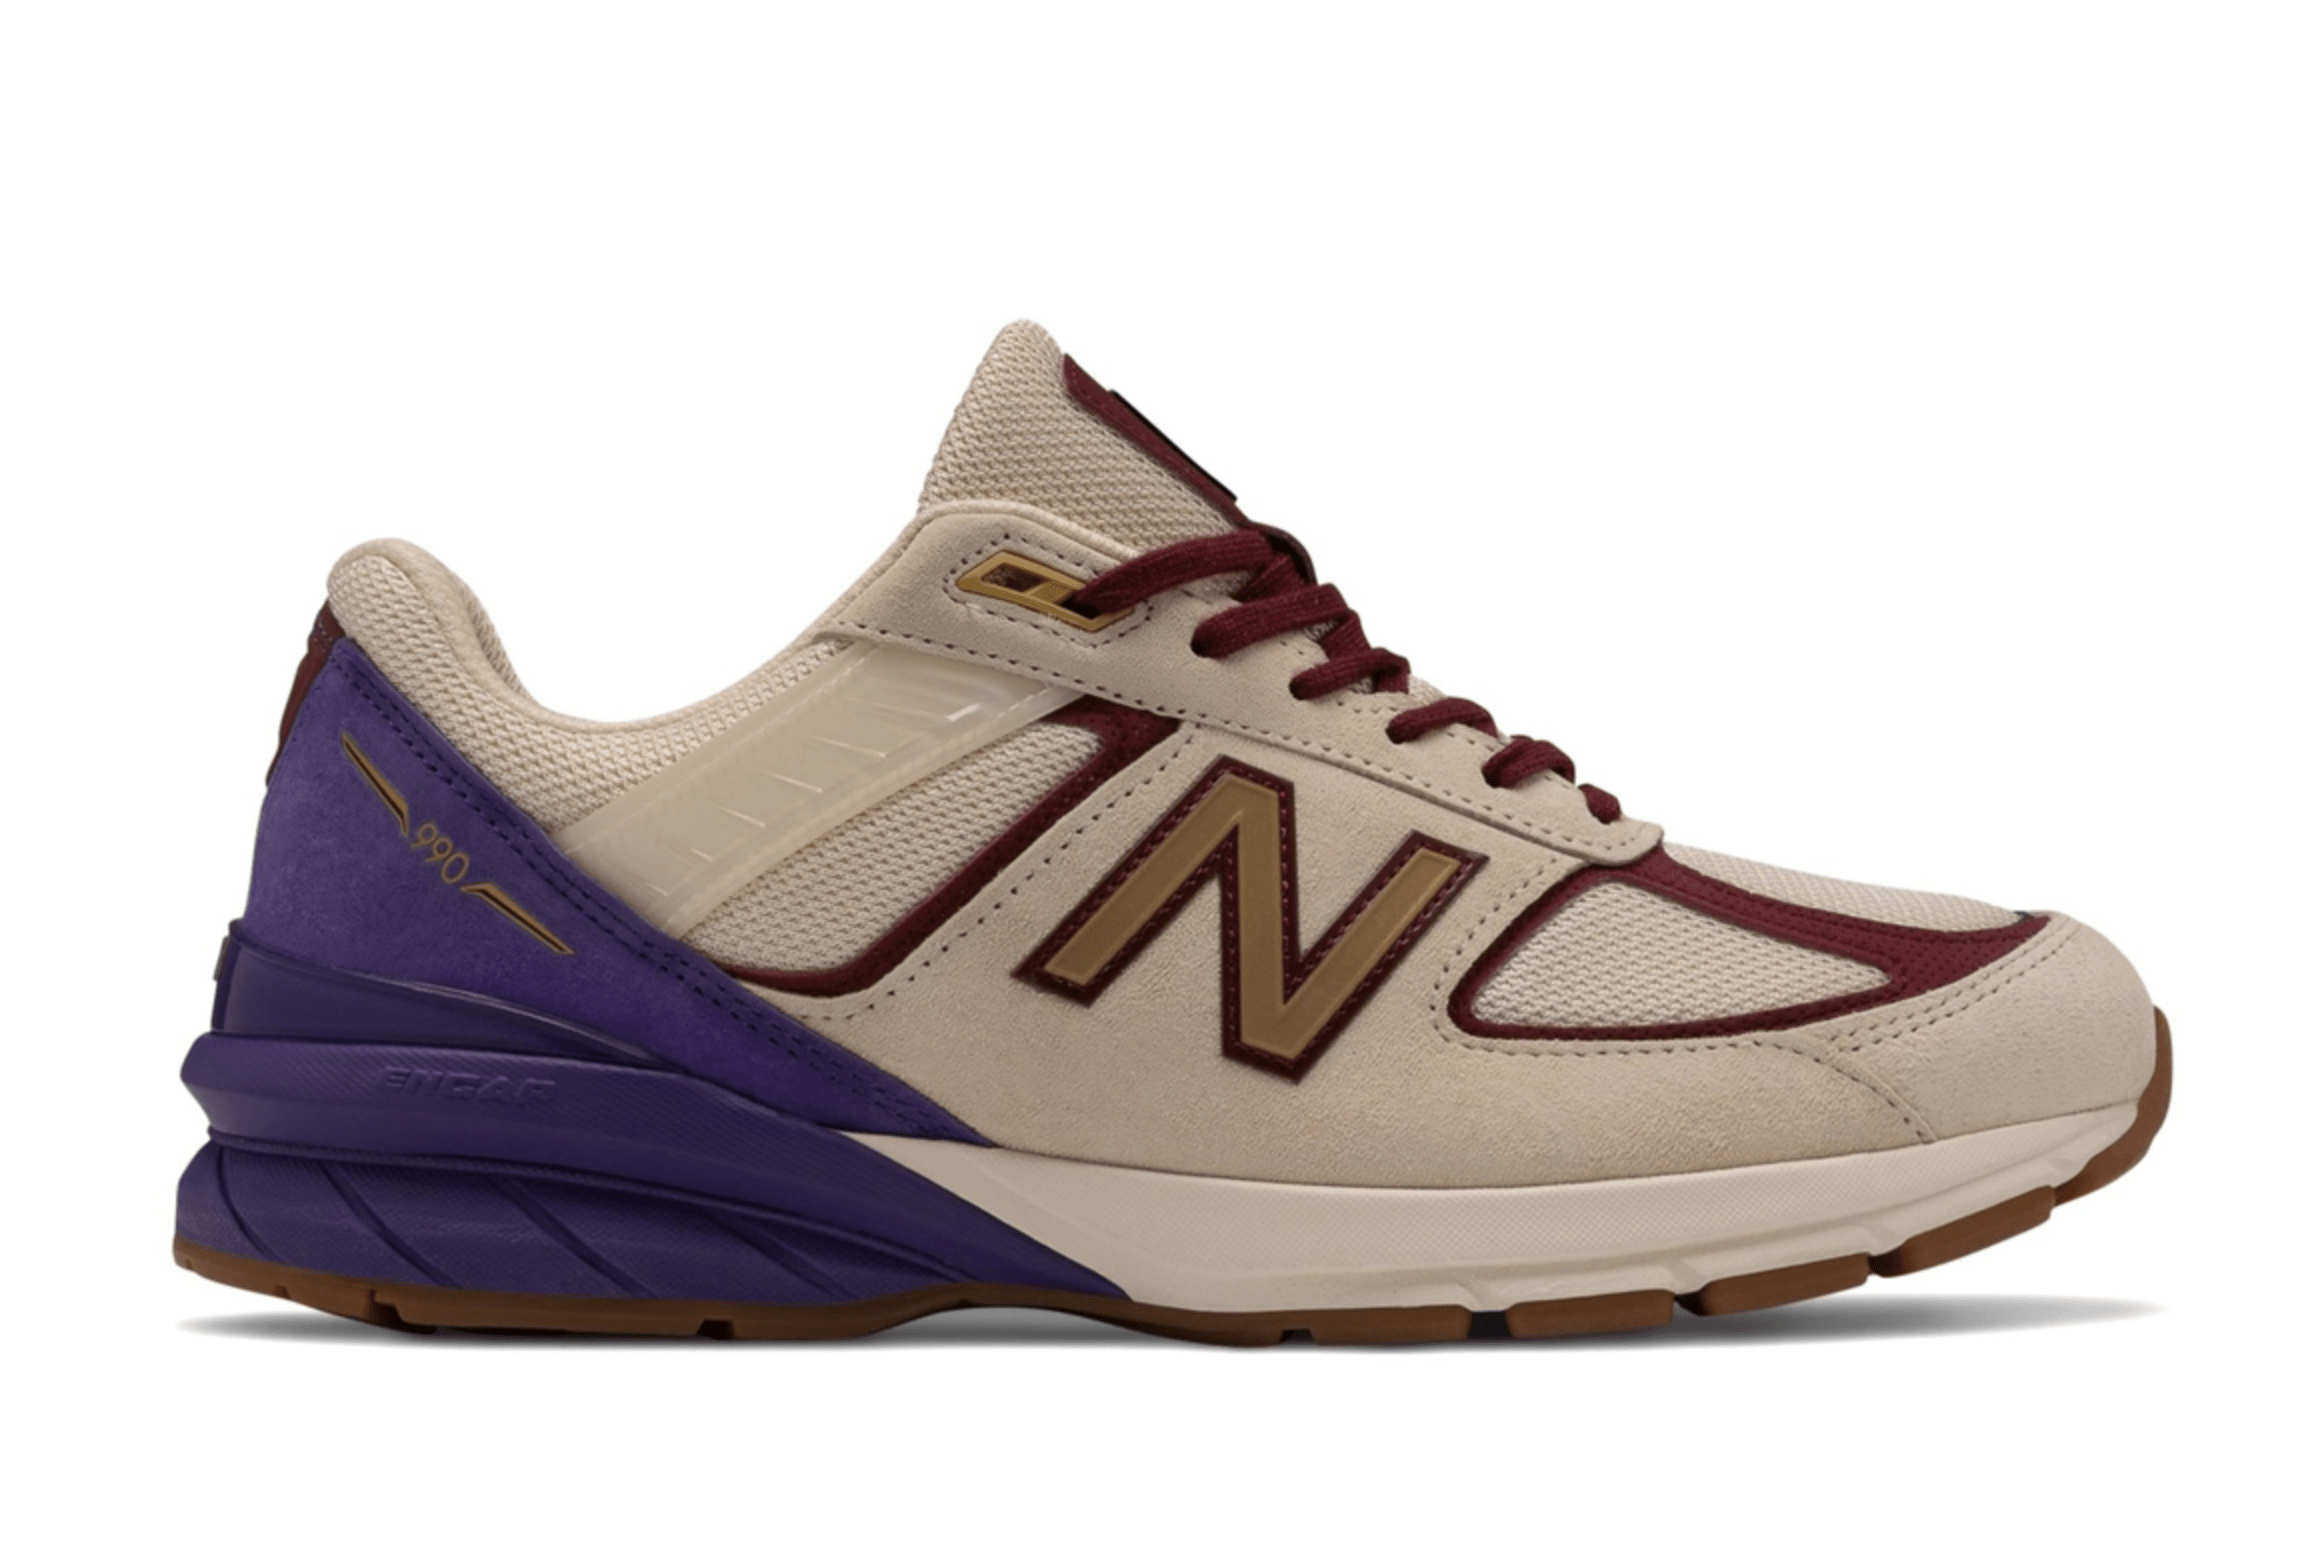 New Balance 990v5 in Black History Month special release